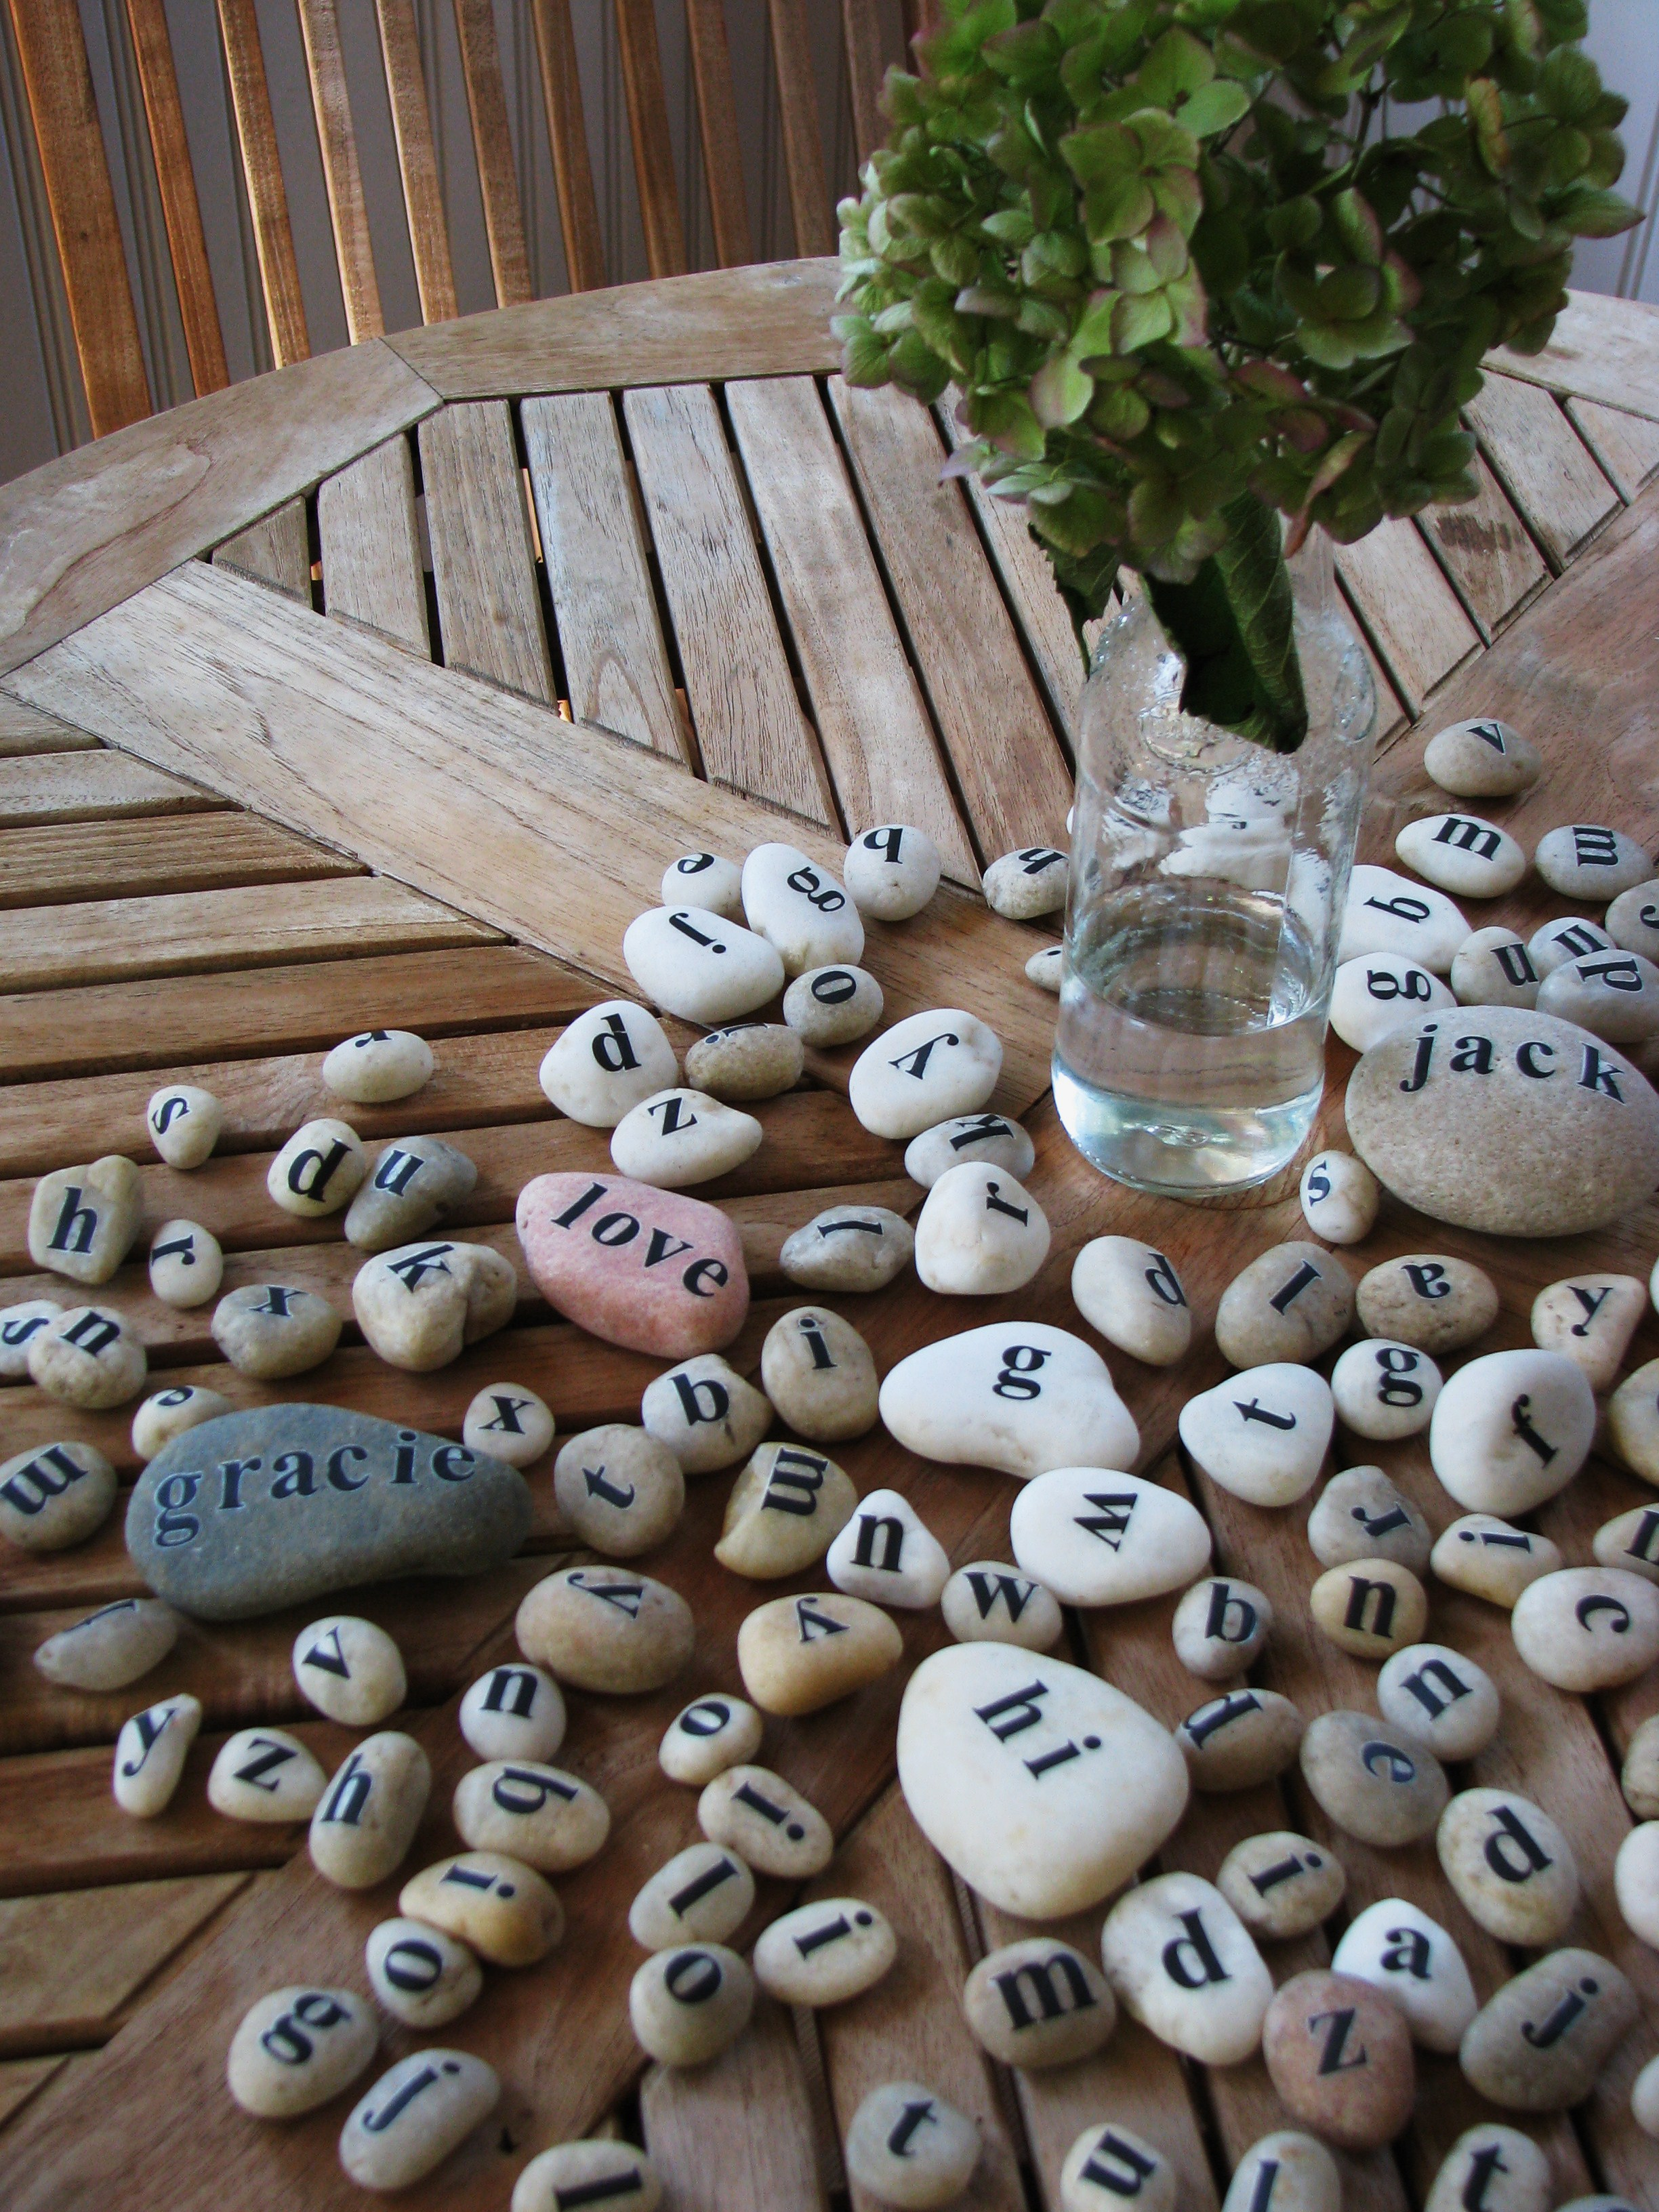 Cool Crafts Made from Rocks, Pebbles, and Stones